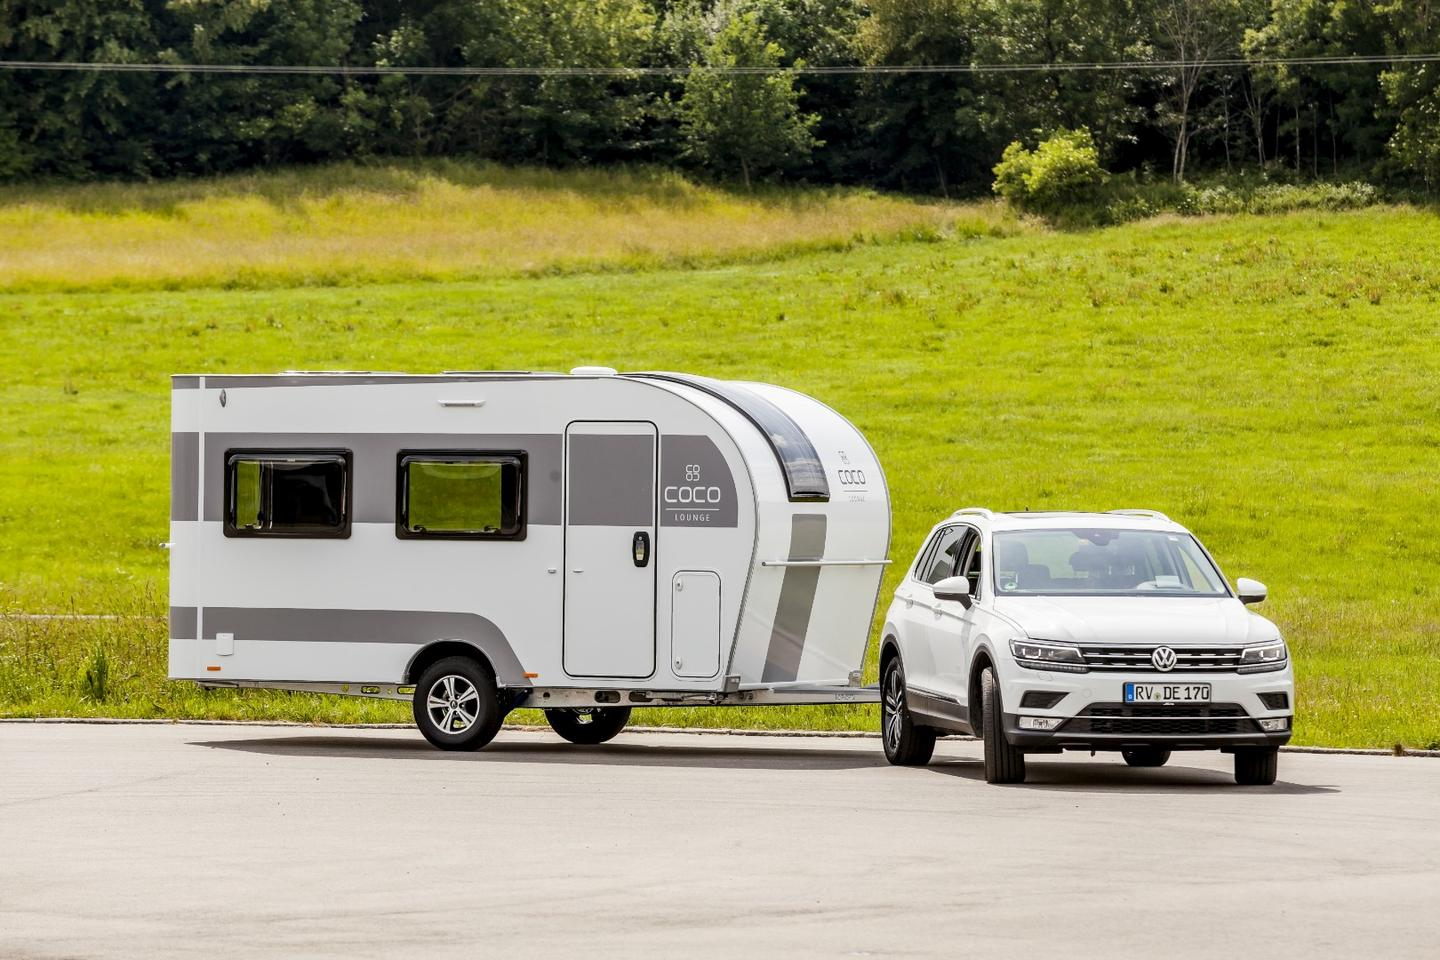 Small camping trailers have been growing in popularity, and the Dethleffs Coco would be a fun, stylish addition to the US market